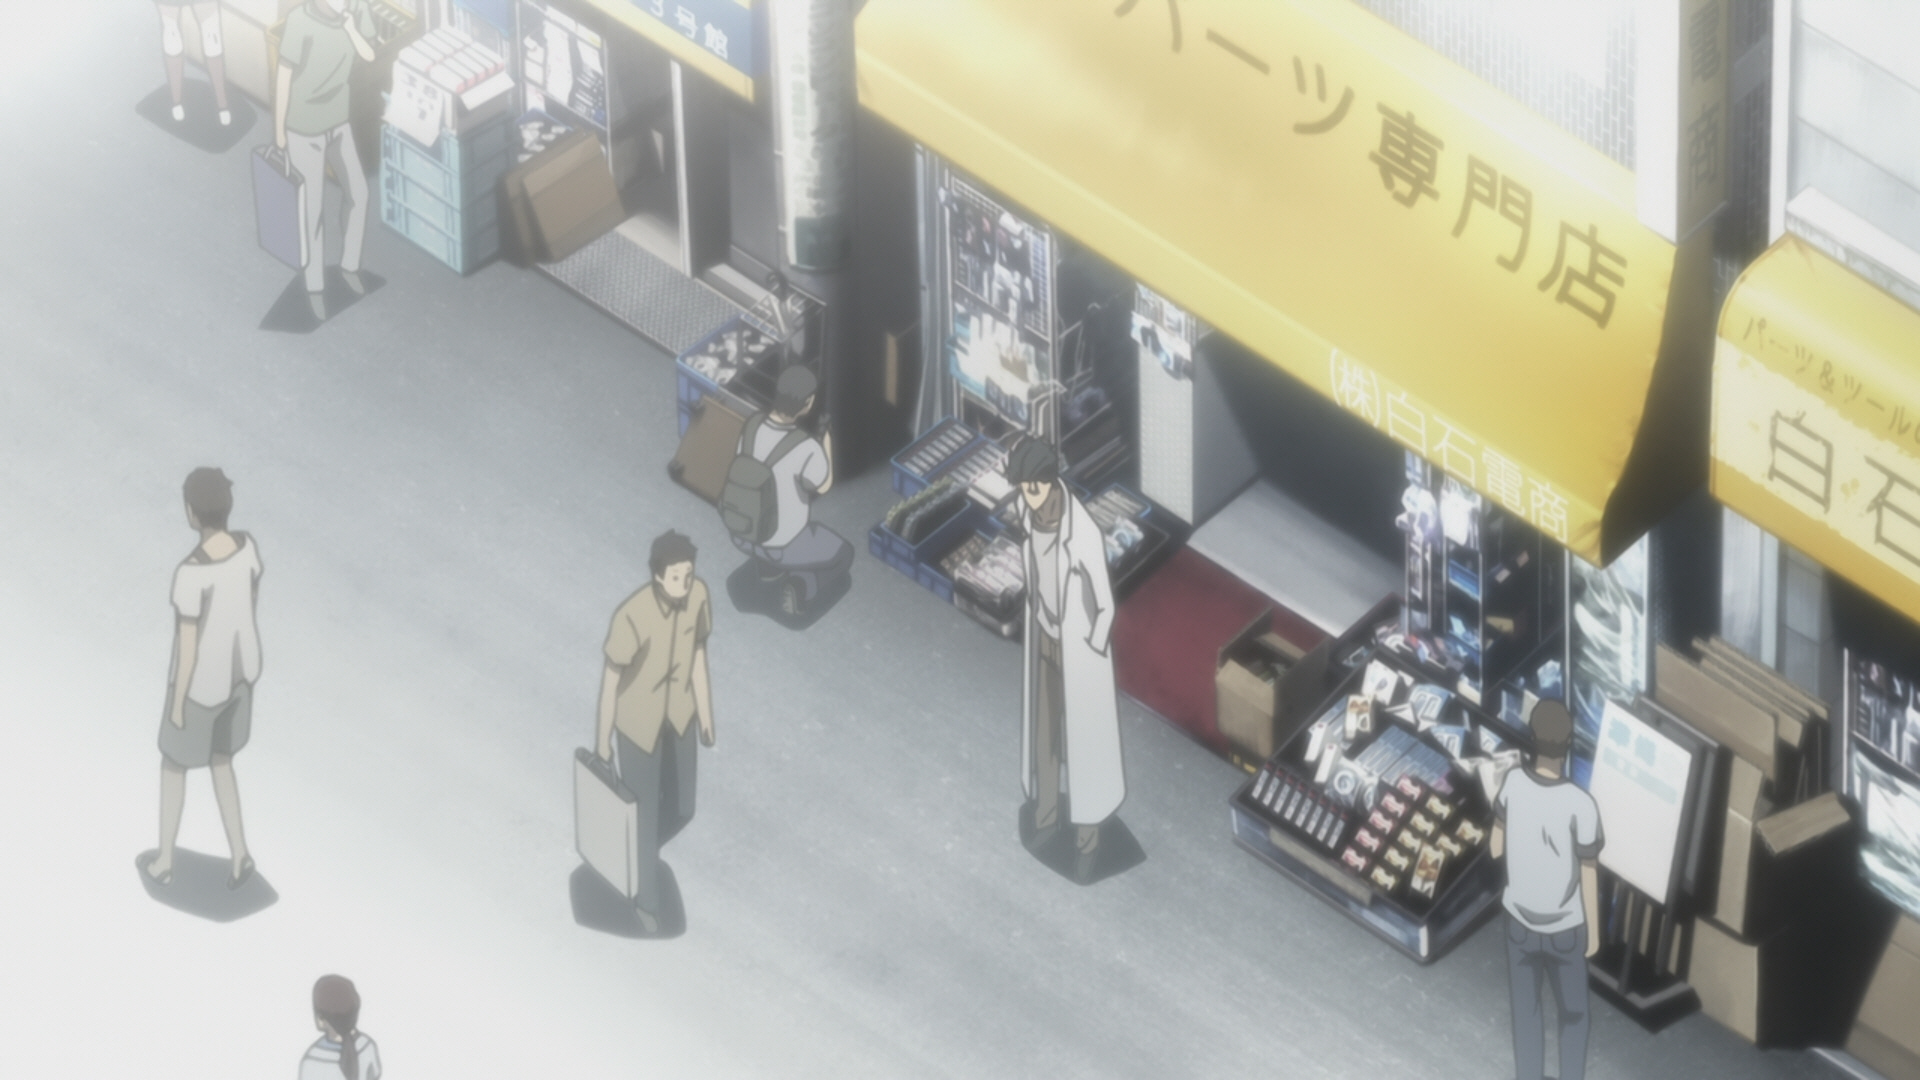 Steins;Gate Episode 4 006